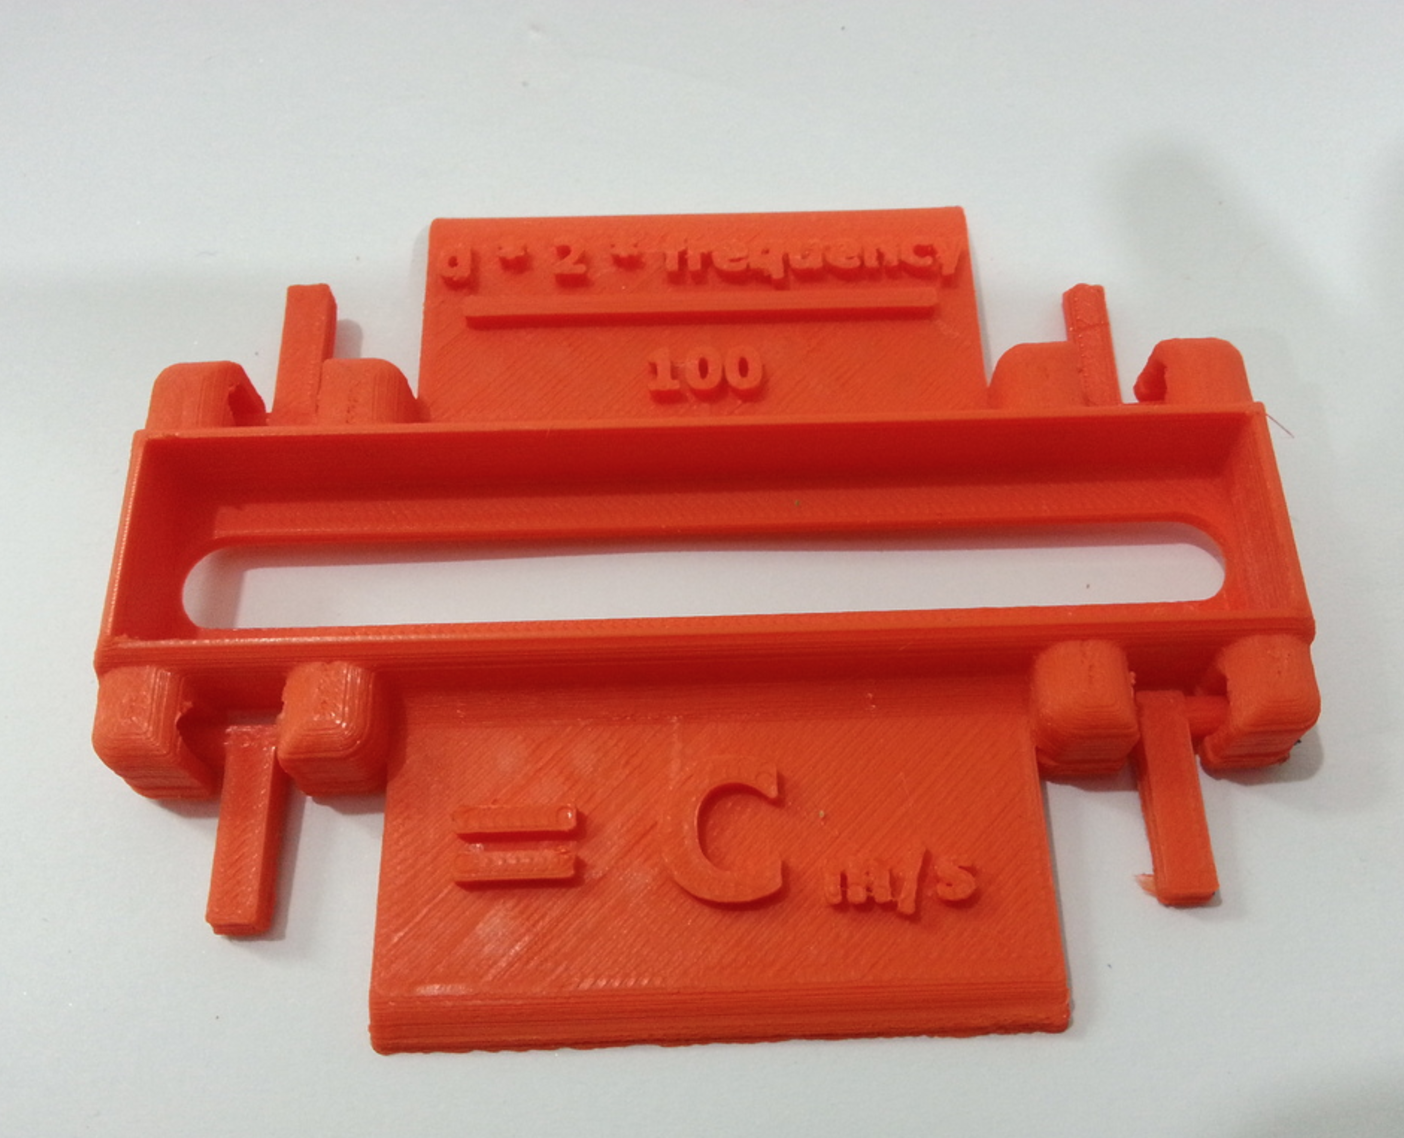 Capture d'écran 2016-12-14 à 16.29.37.png Download free STL file Measure the Speed of Light With Chocolate! • 3D printable design, Yuval_Dascalu